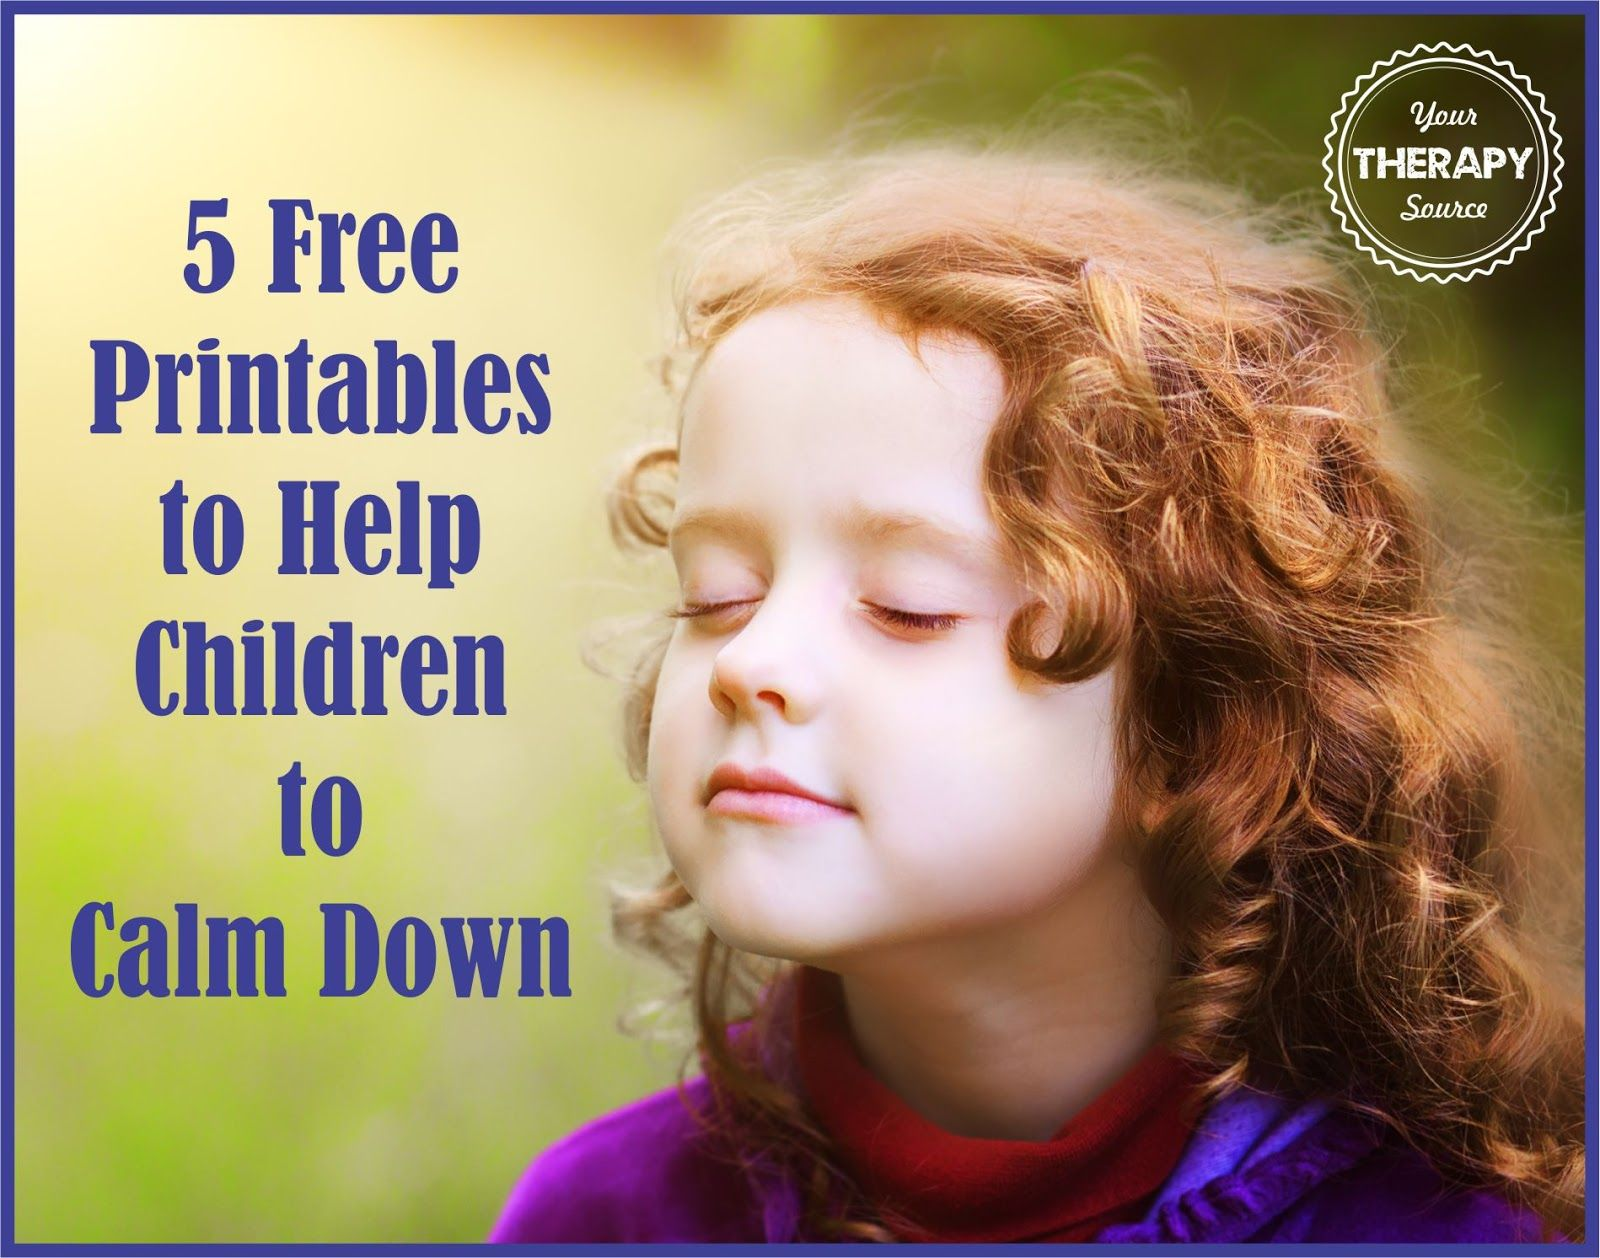 5 Free Printables To Help Children Calm Down